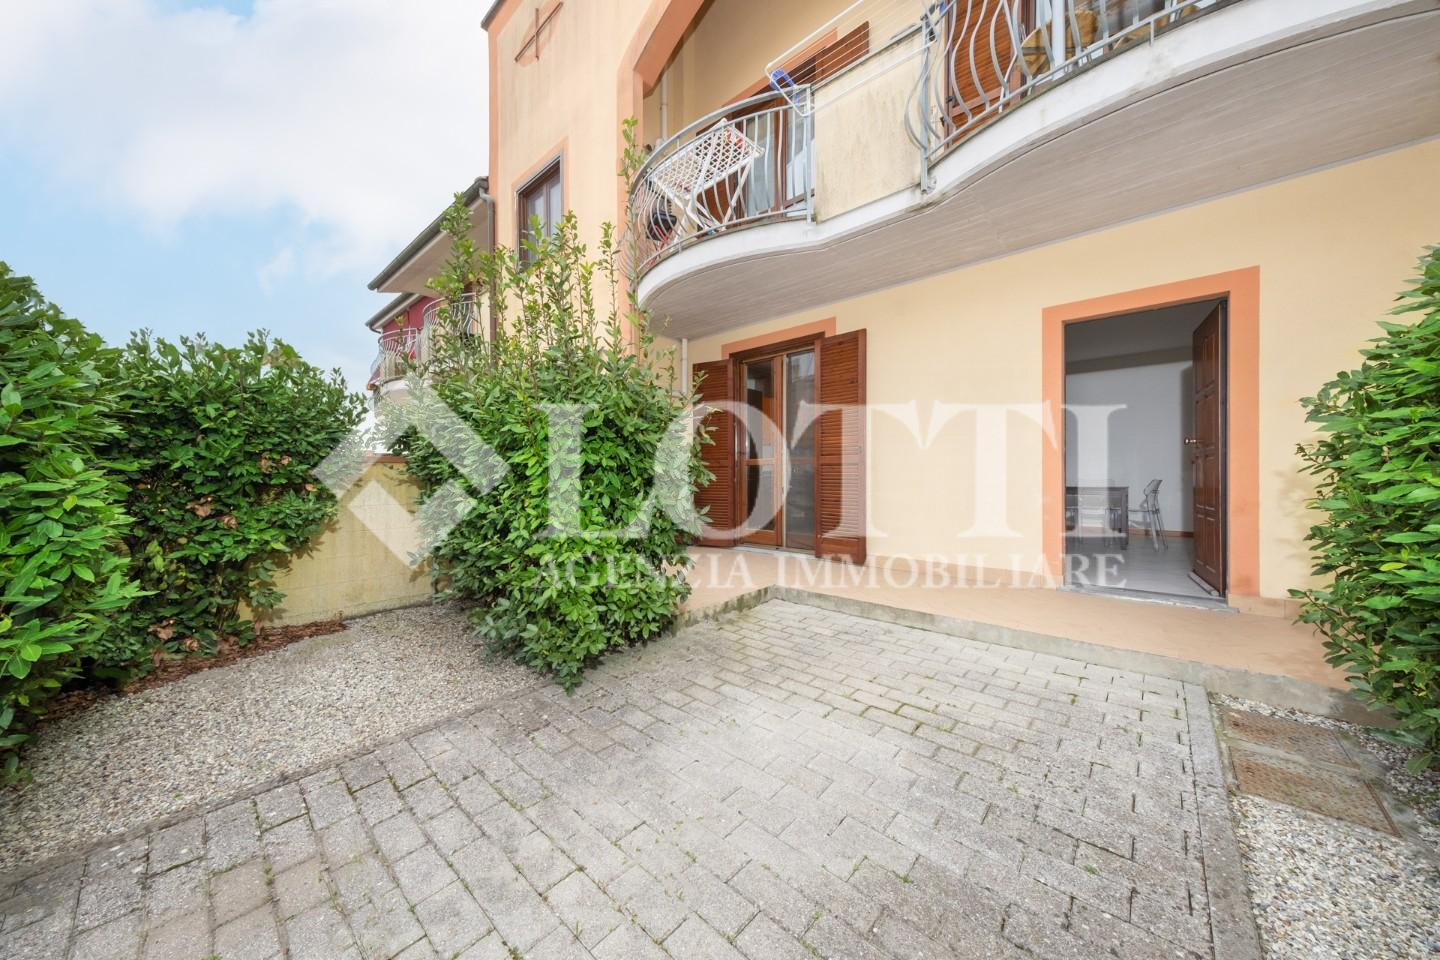 Apartment for sale in Calcinaia (PI)